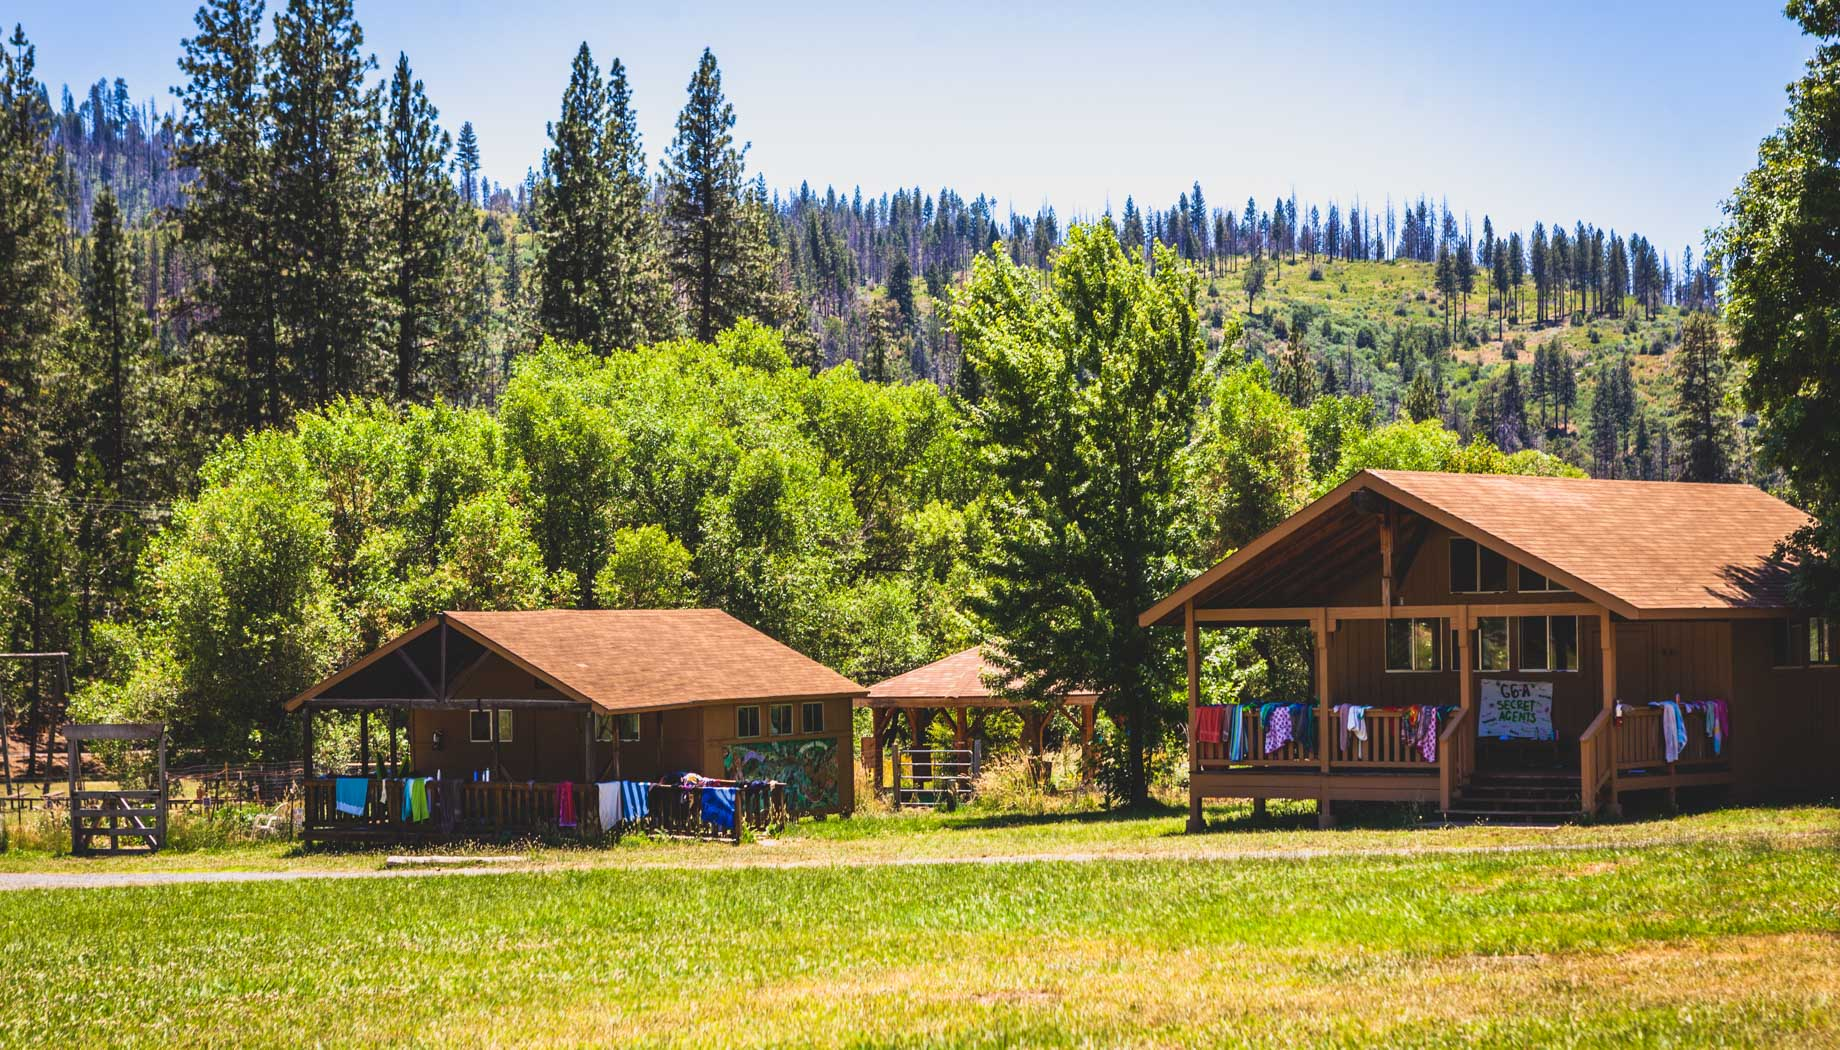 Camper cabins surrounded by trees